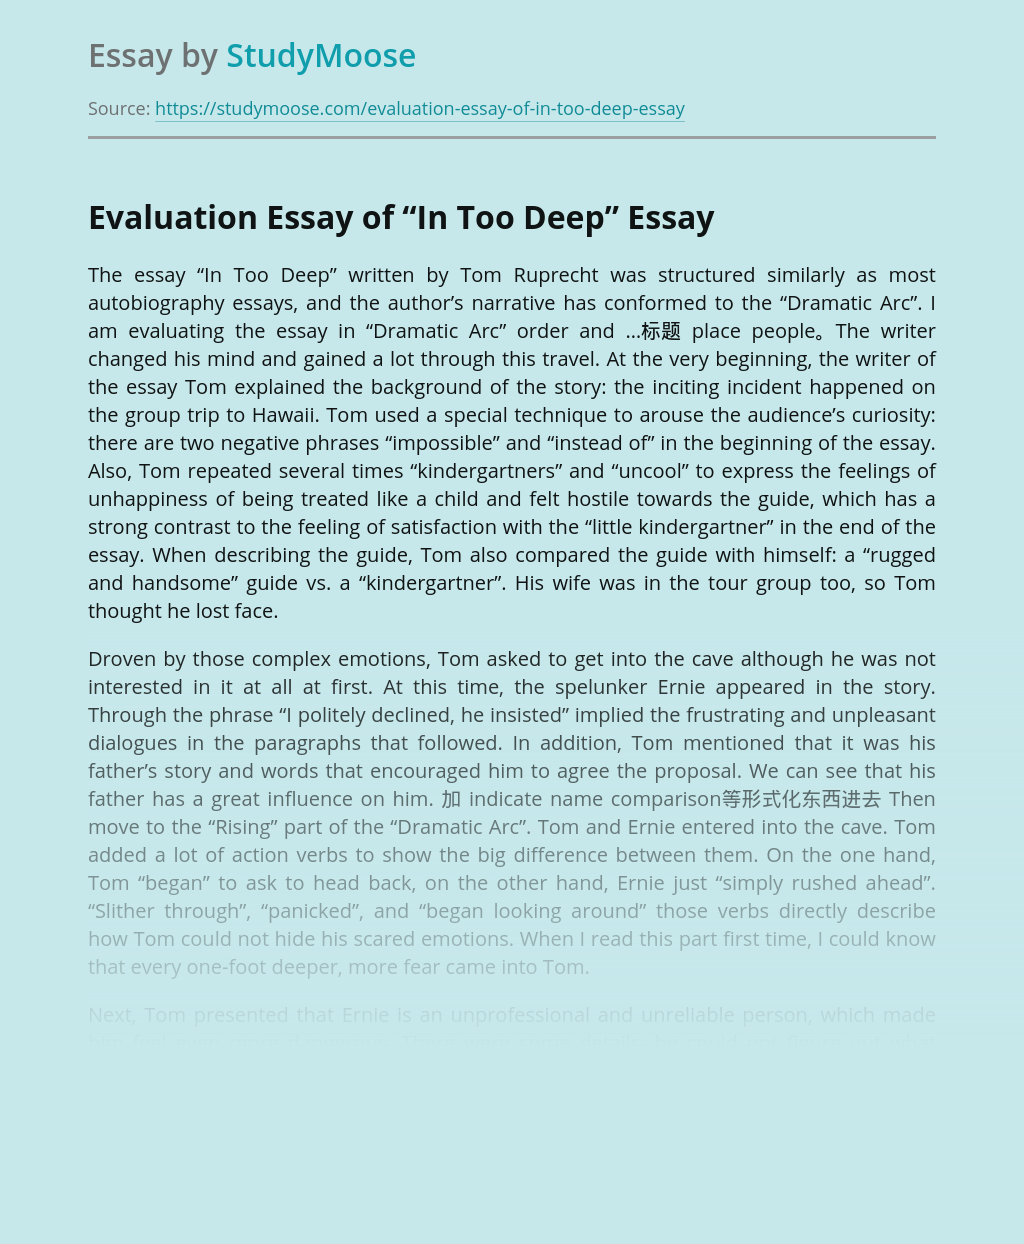 """Evaluation Essay of """"In Too Deep"""""""